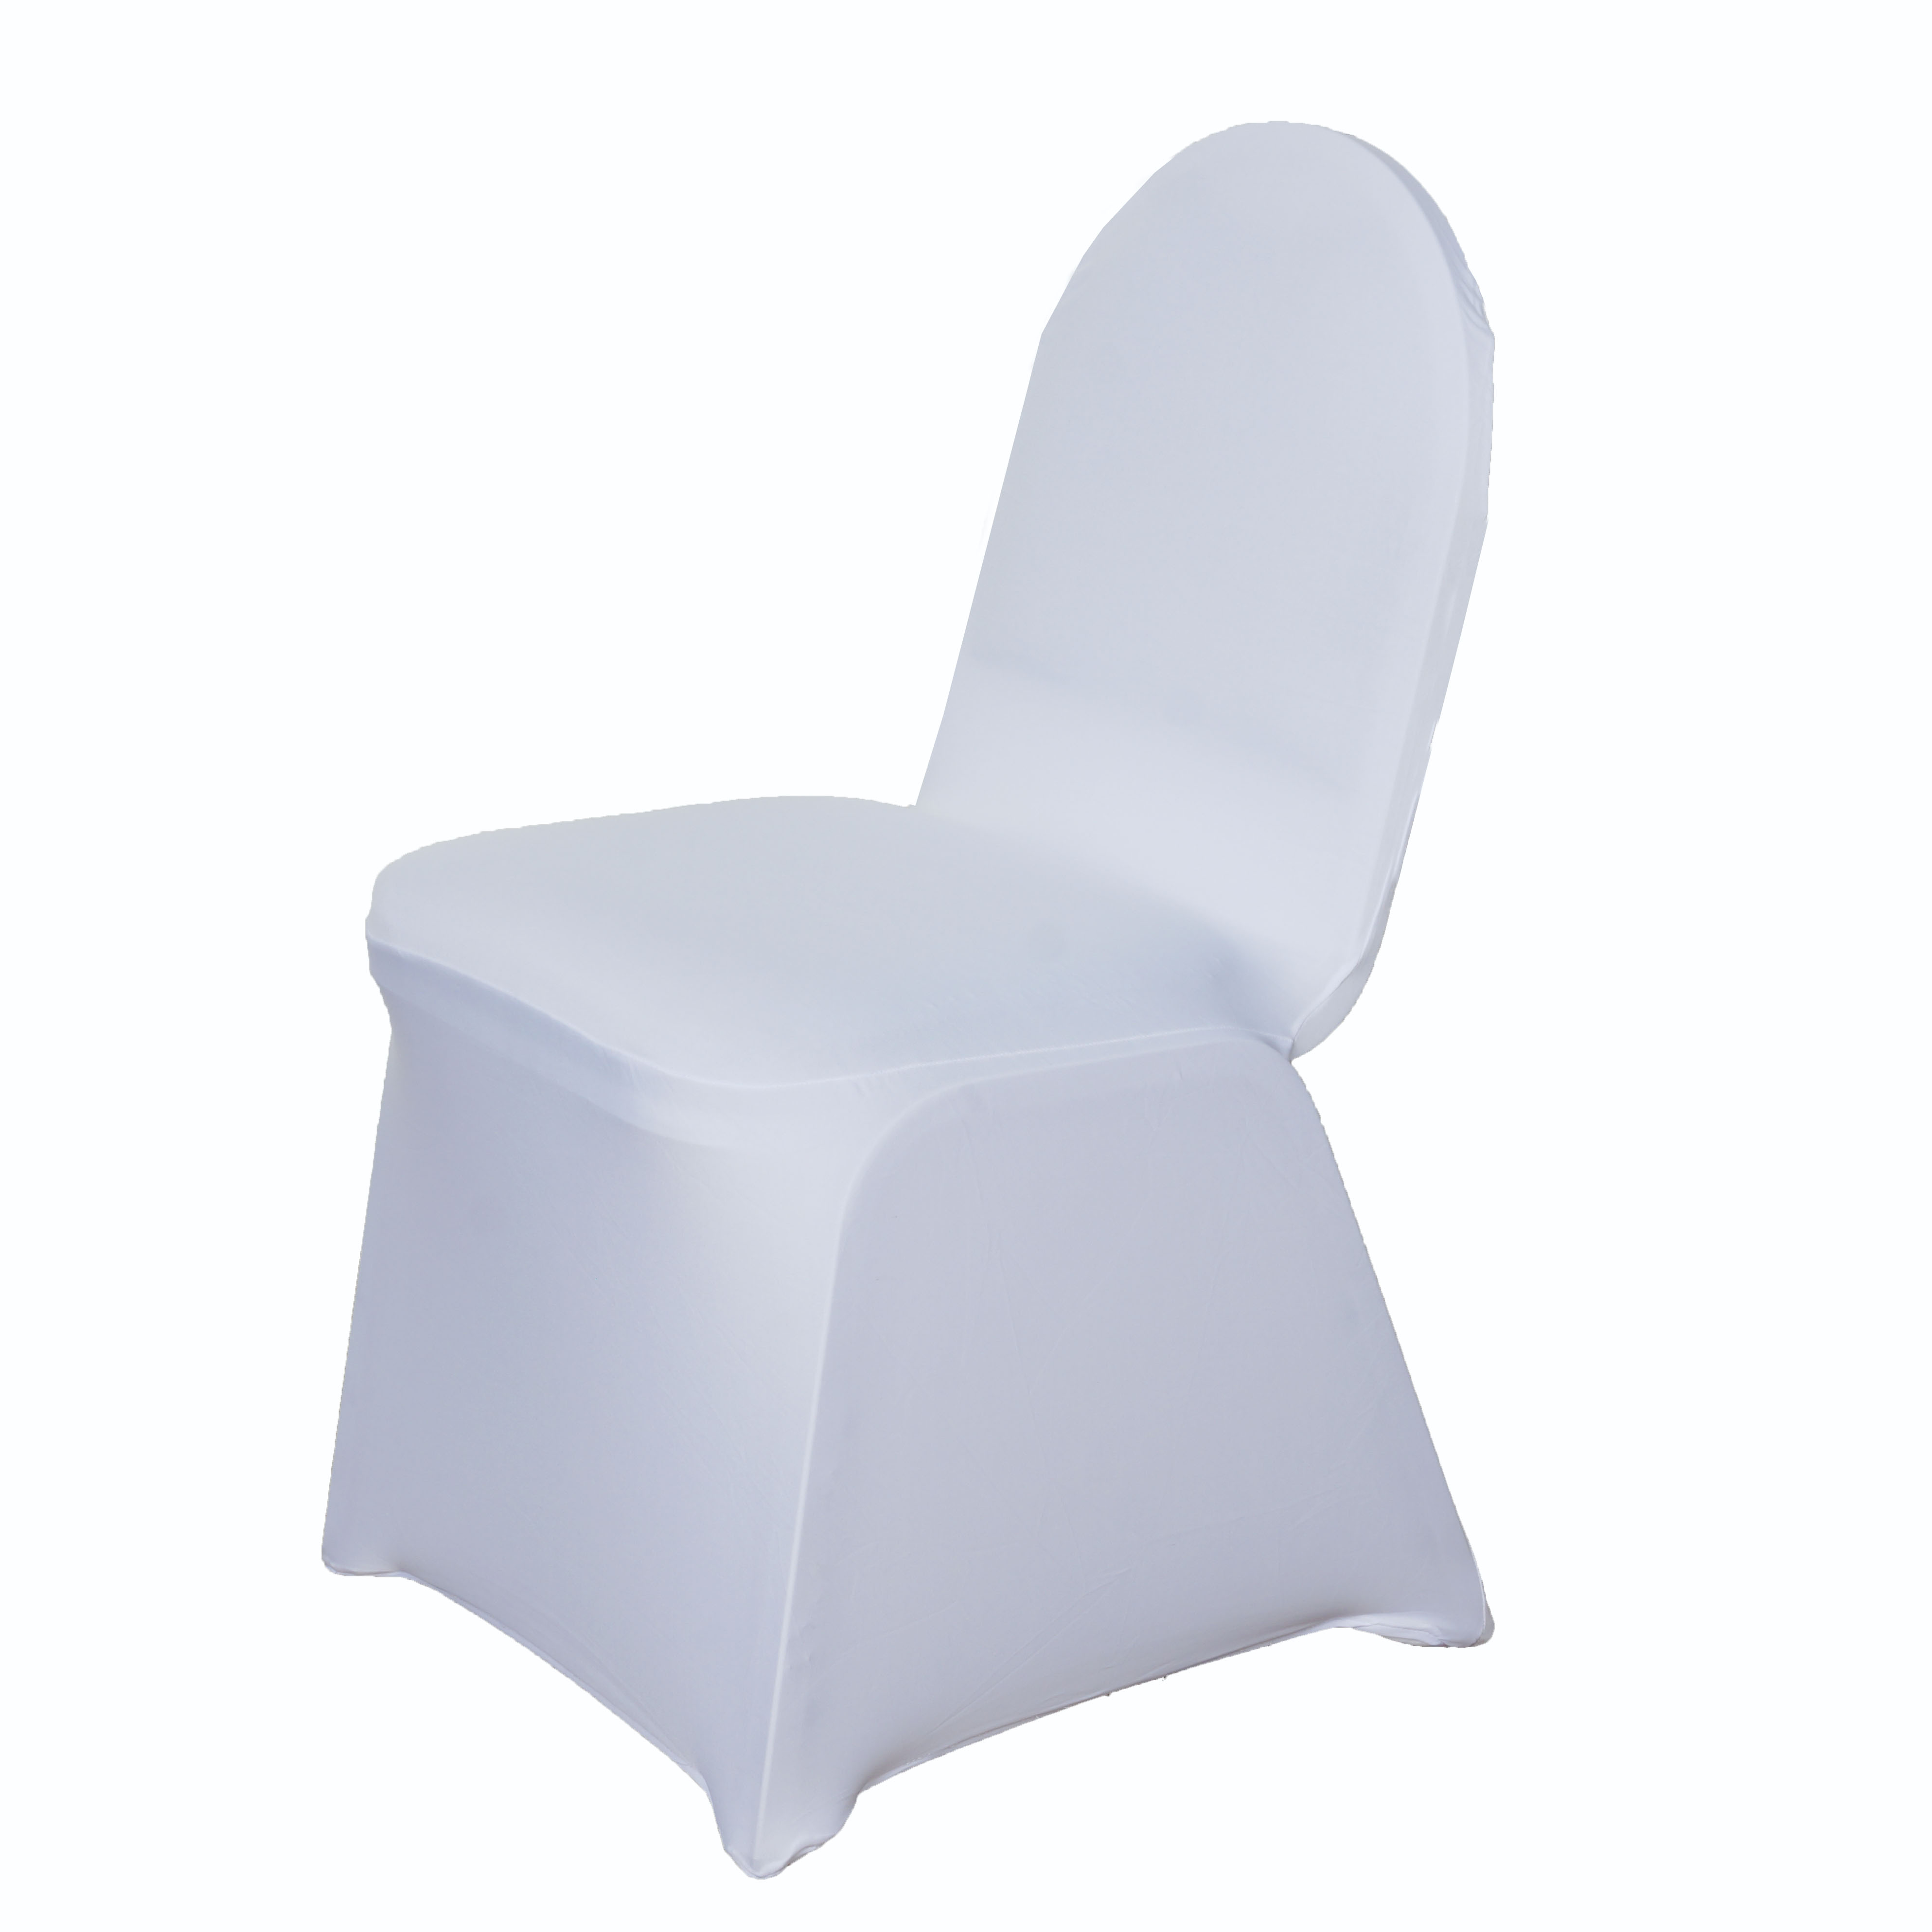 spandex lycra chair cover for wedding party tabouret metal chairs 200 pcs stretchable covers